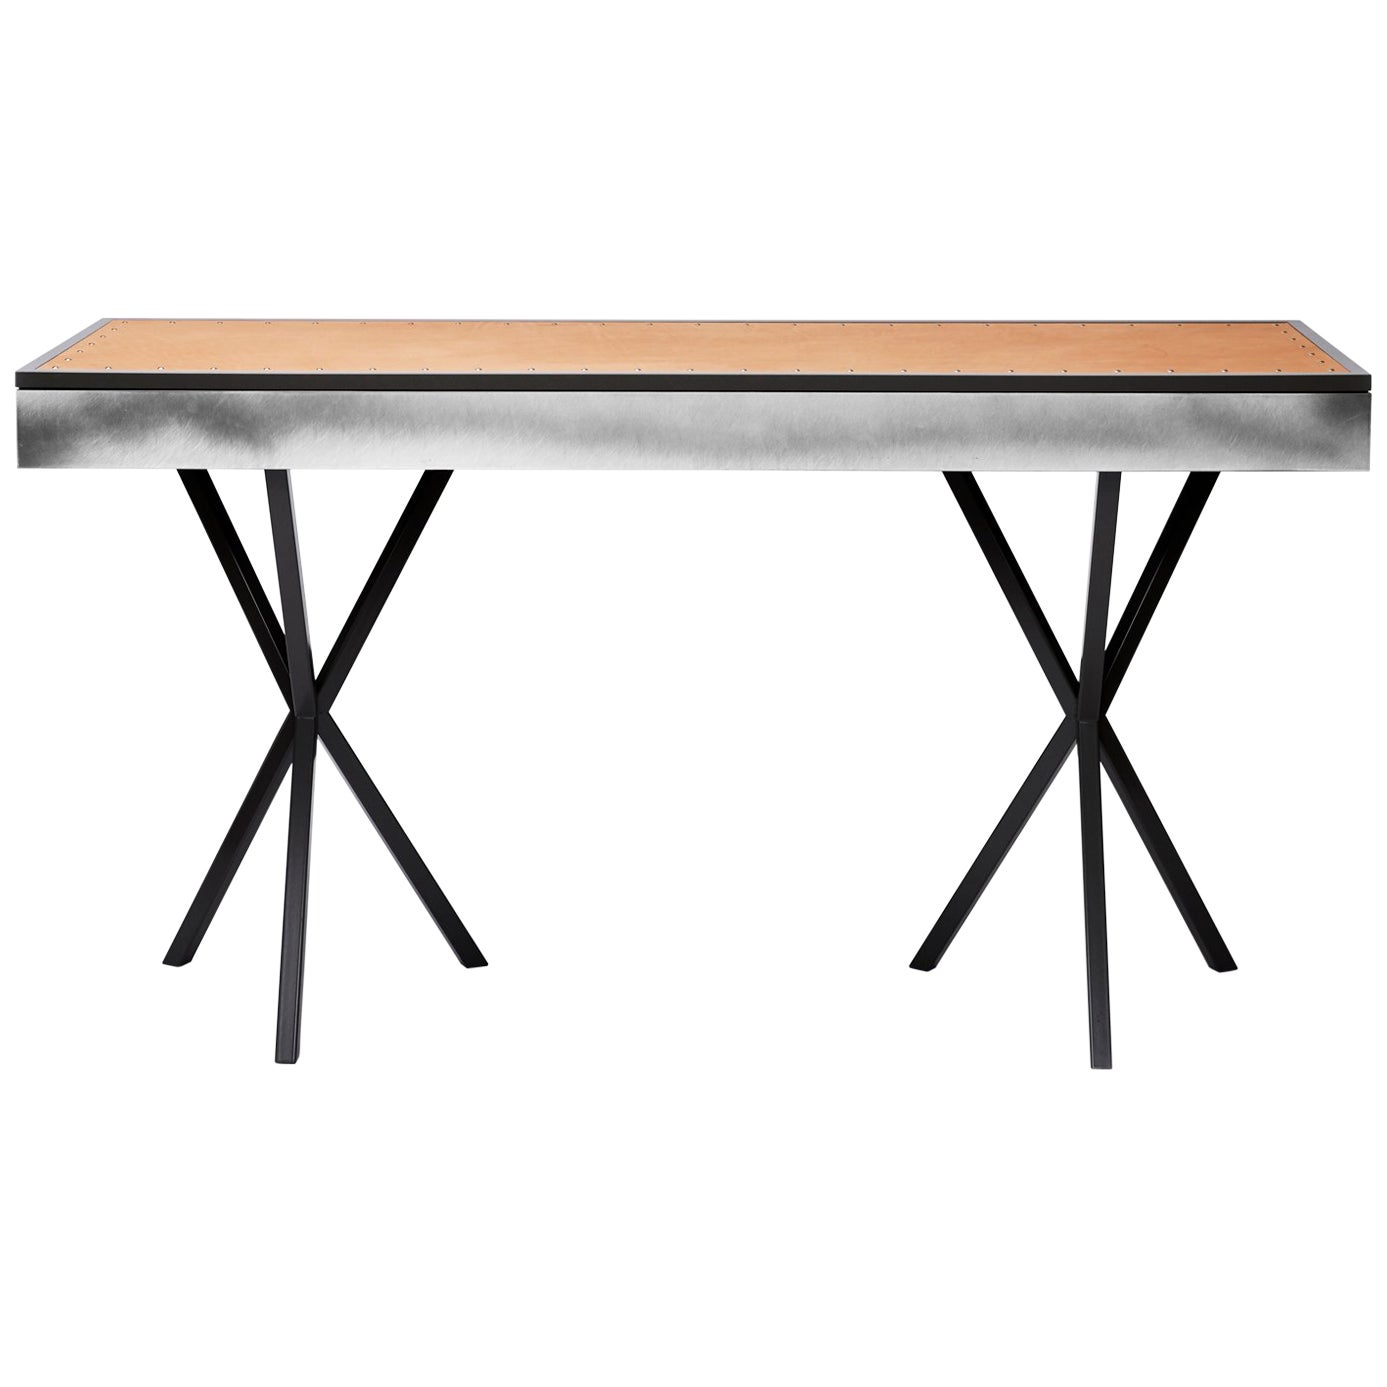 Contemporary Neb Writing Desk with Leather Top and Metal Front by Per Soderberg